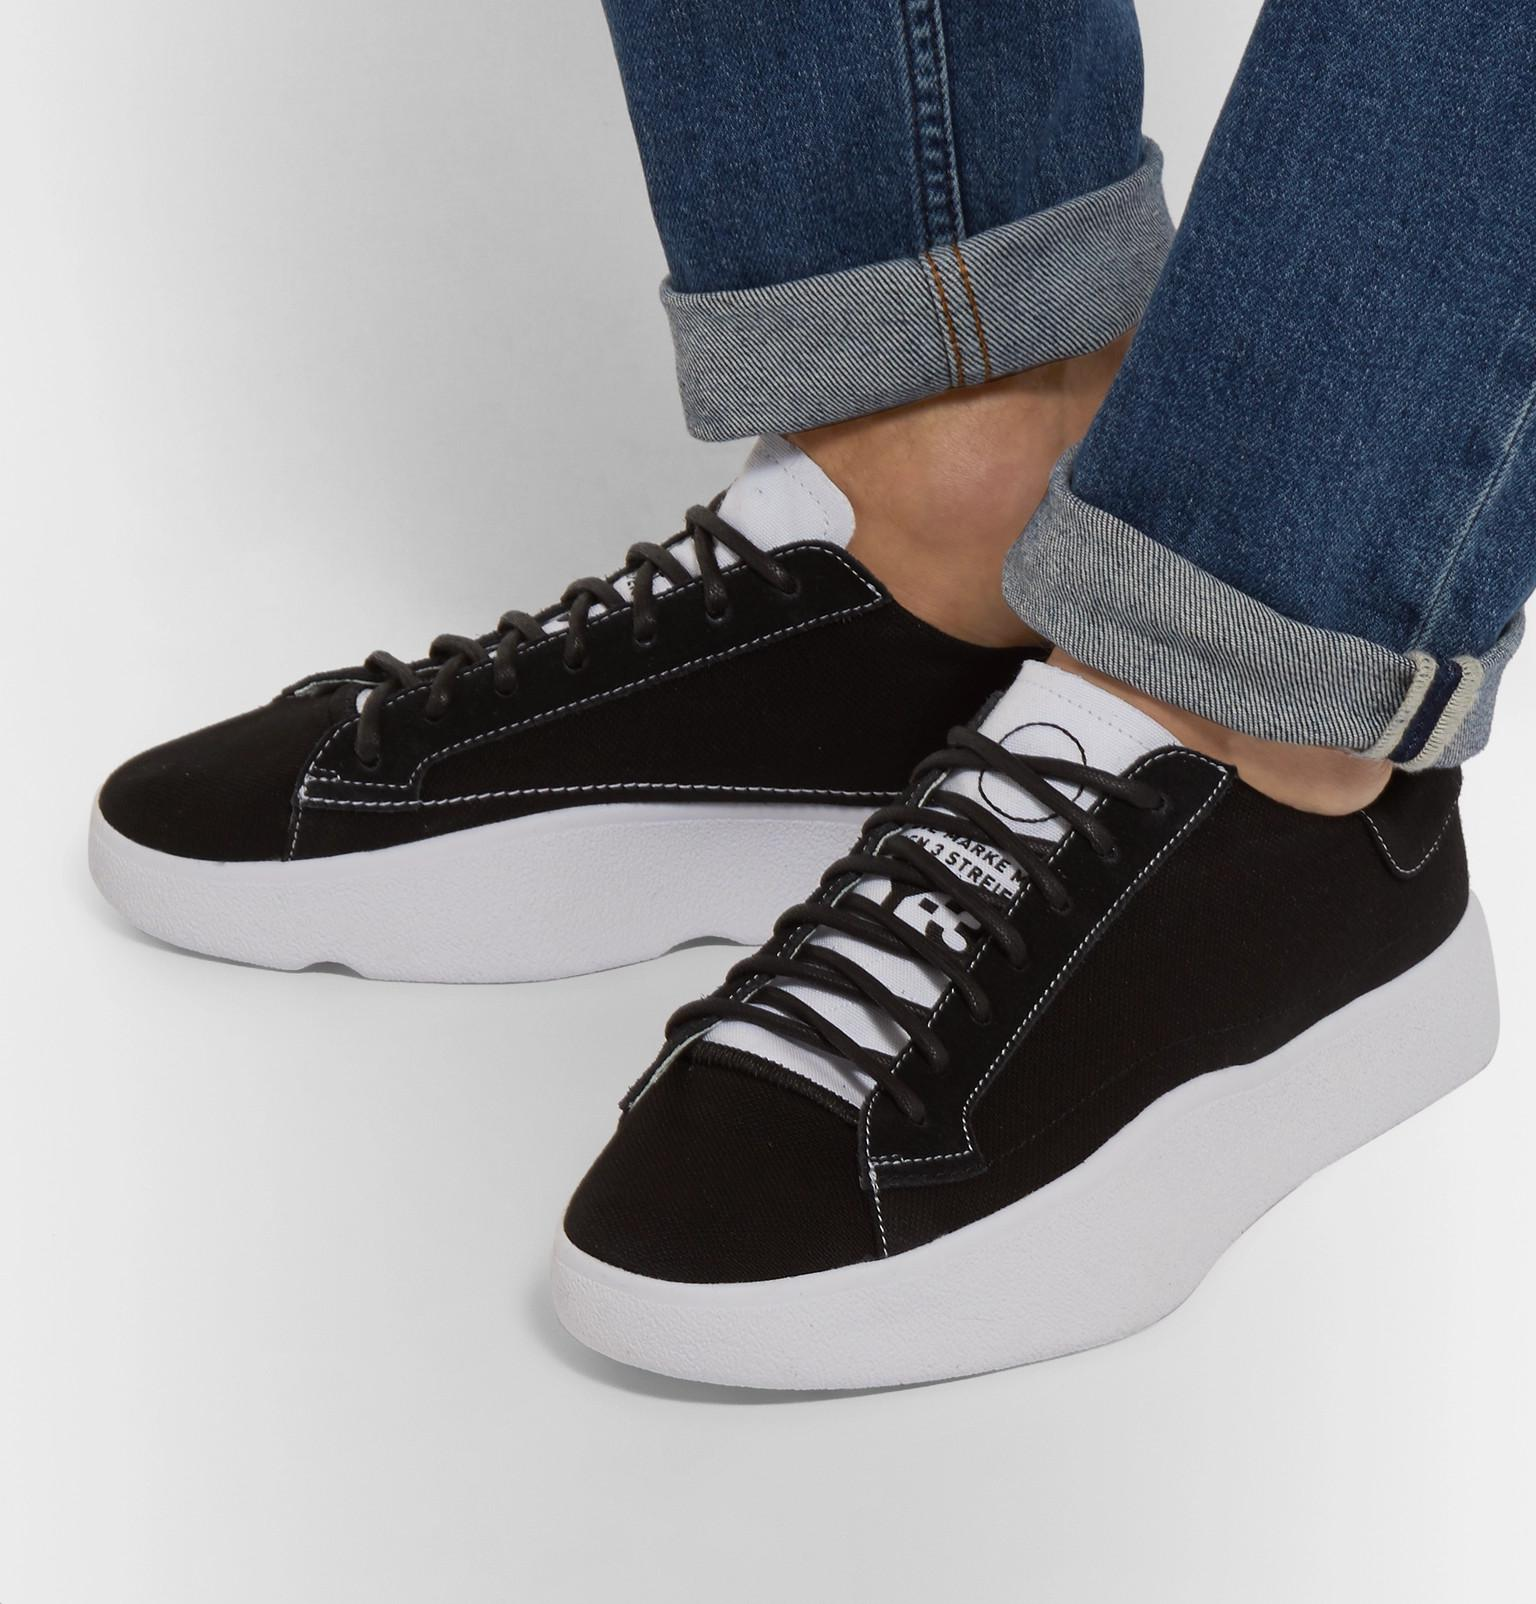 8d4396988 Y-3 Tangutsu Suede-trimmed Canvas Sneakers in Black for Men - Lyst